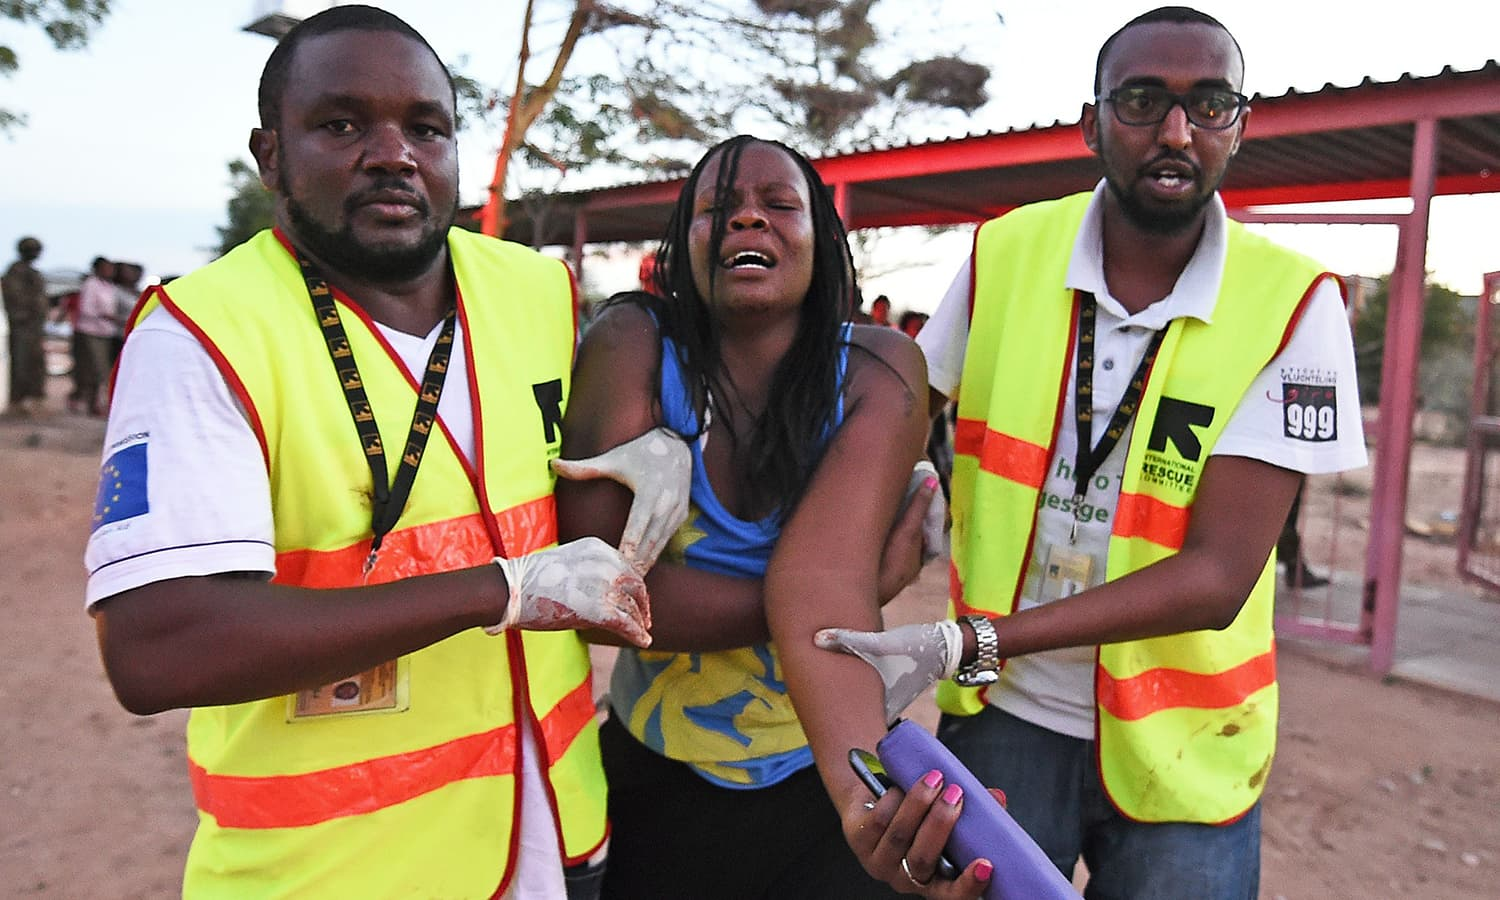 Paramedics help a woman who was injured during an attack by Somalia's Al-Qaeda-linked Shebab gunmen on the Moi University campus in Garissa. -AFP